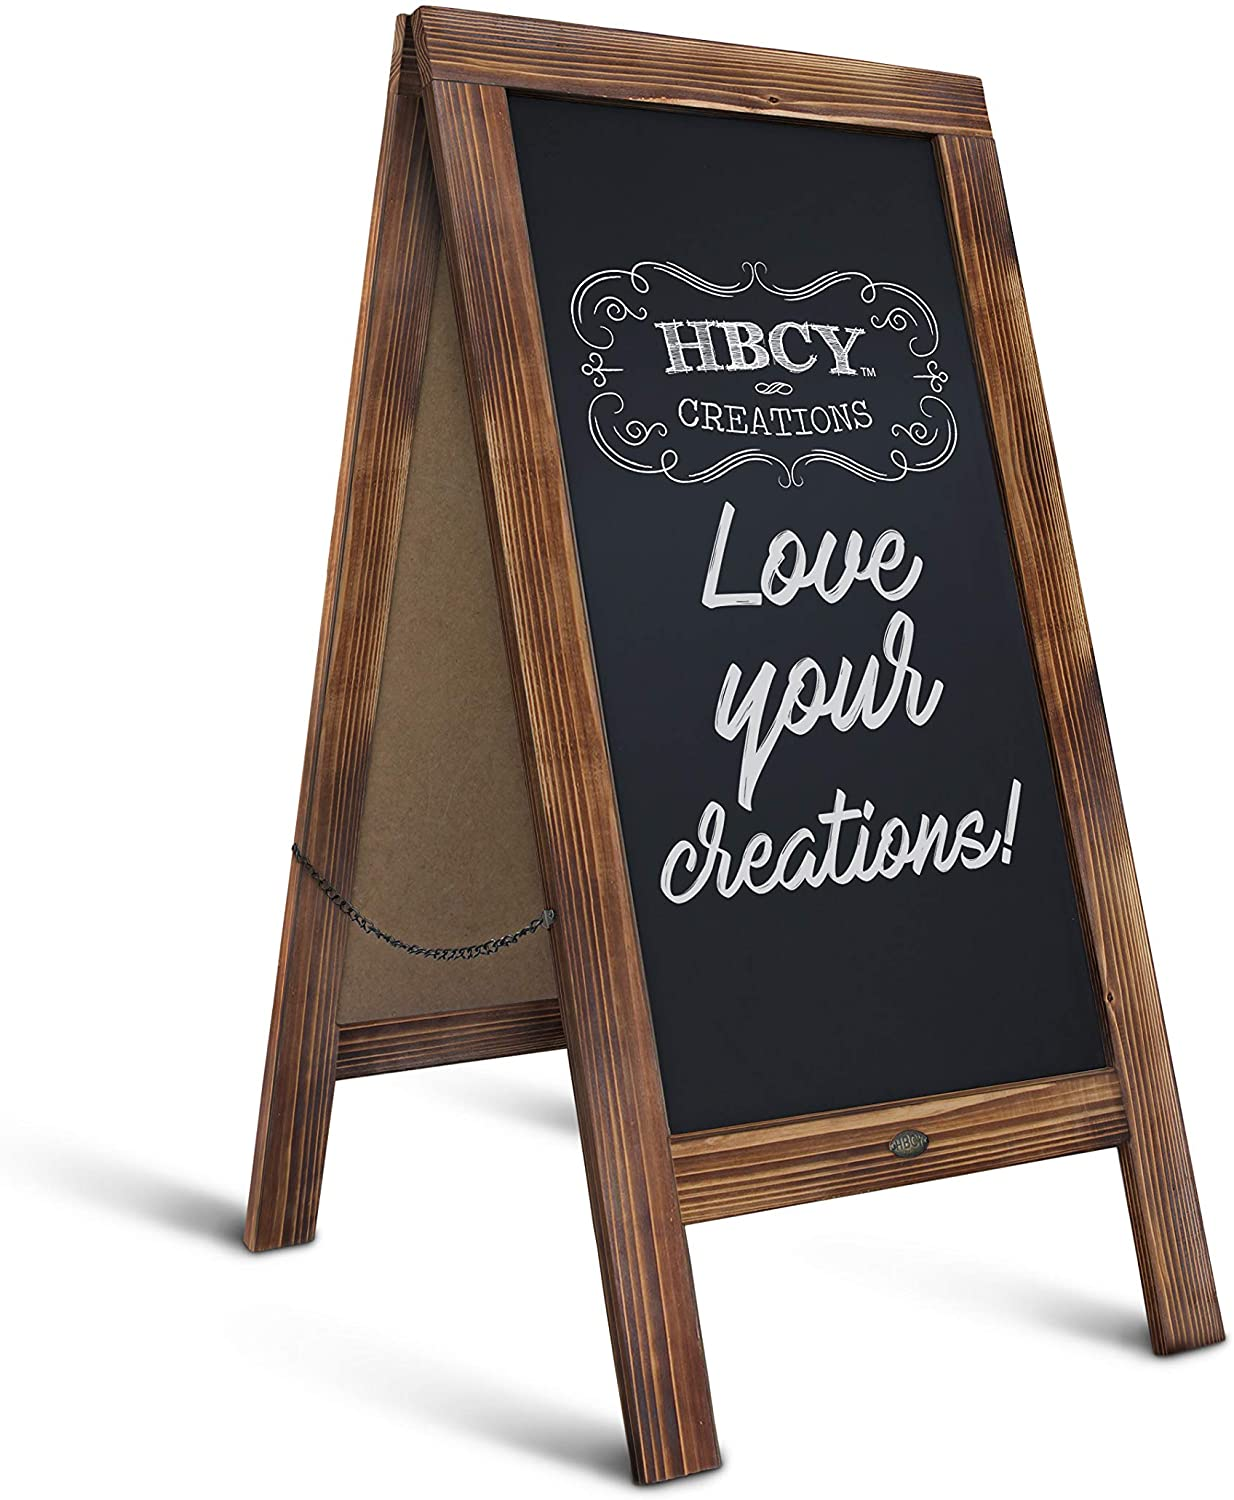 Amazon Com Rustic Magnetic A Frame Chalkboard Sign Extra Large 40 X 20 Free Standing Chalkboard Easel Sturdy Sidewalk Sign Sandwich Board Outdoor A Frame Chalk Board For Weddings